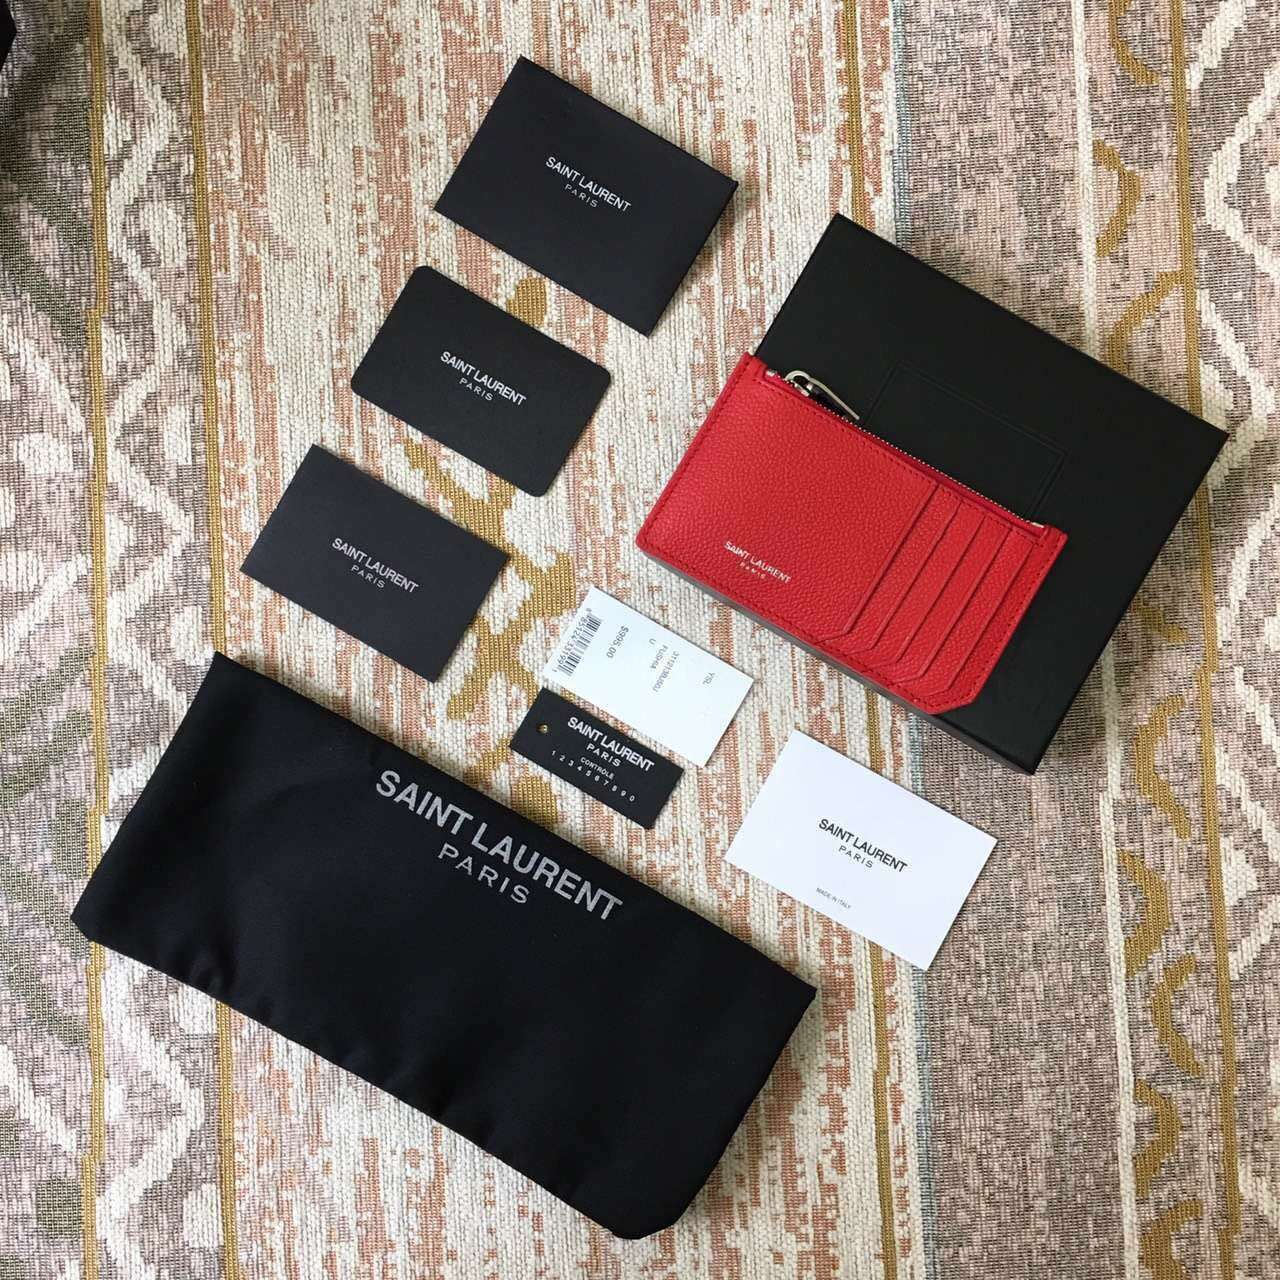 Limited Edition!2016 New Saint Laurent Small Leather Goods Cheap Sale-Saint Laurent Classic Paris 5 Fragments Zip Pouch in Red Leather